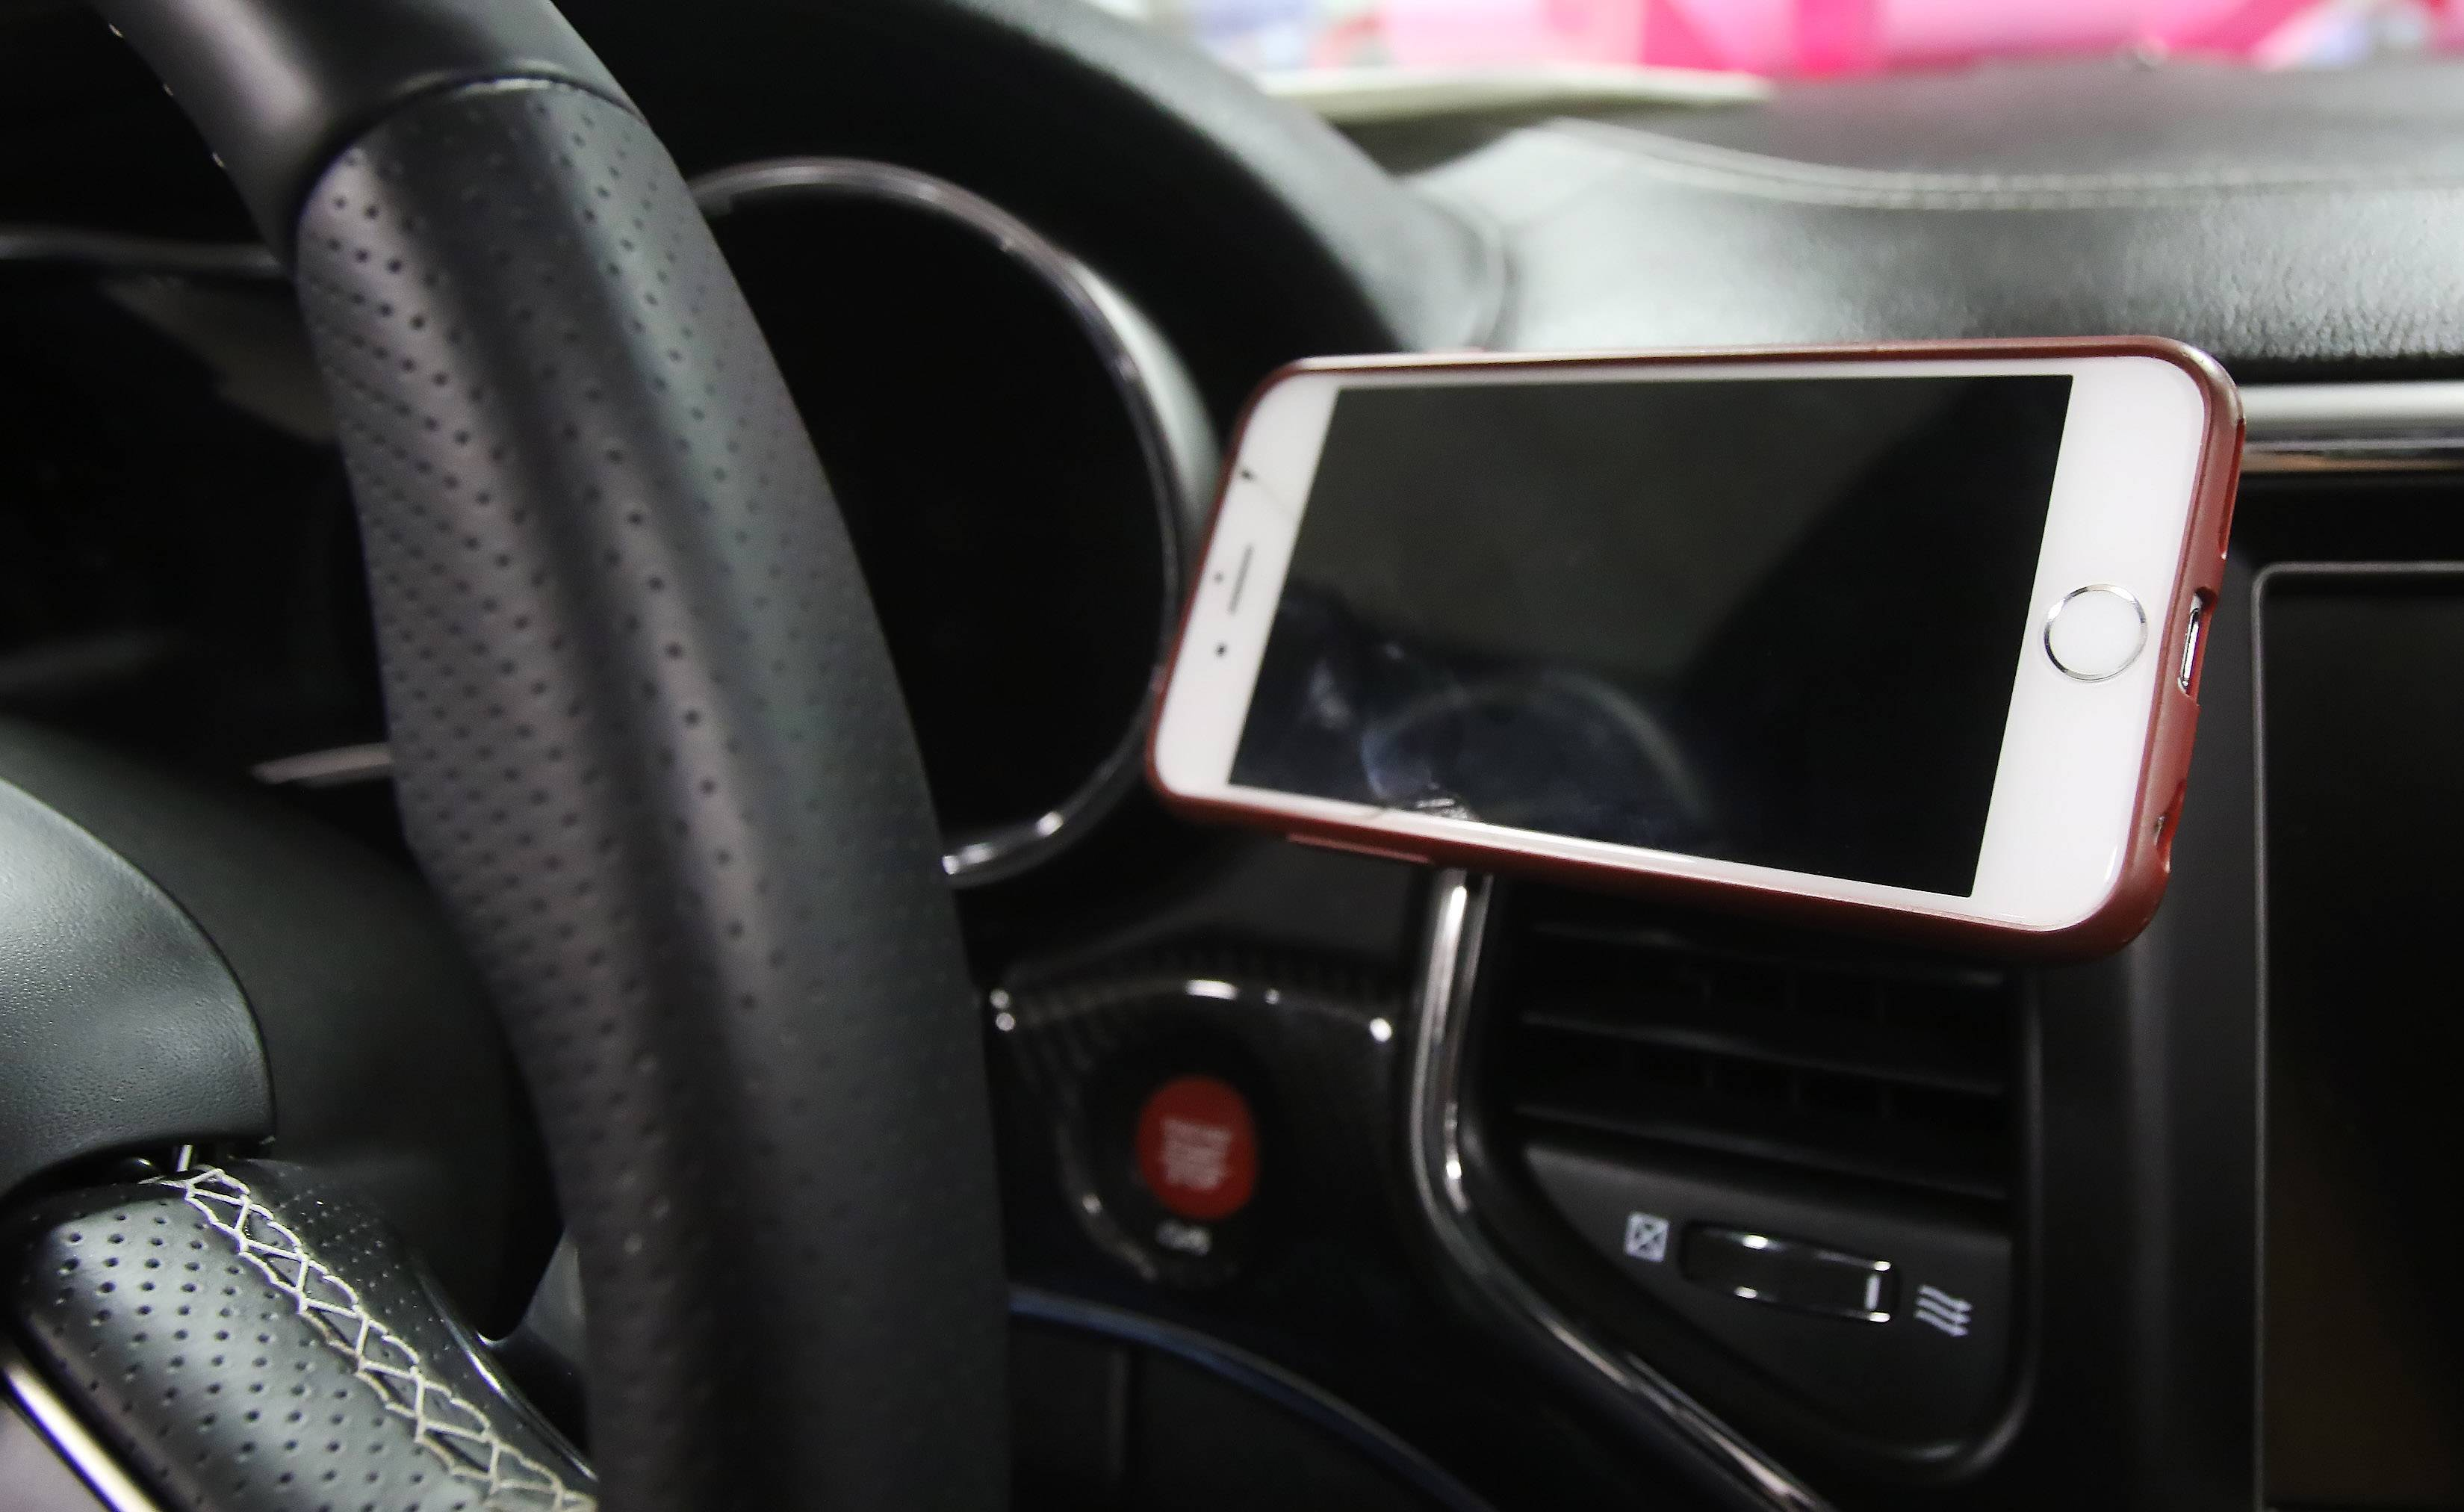 Text and drive? Where you could get a phone cradle instead of a ticket